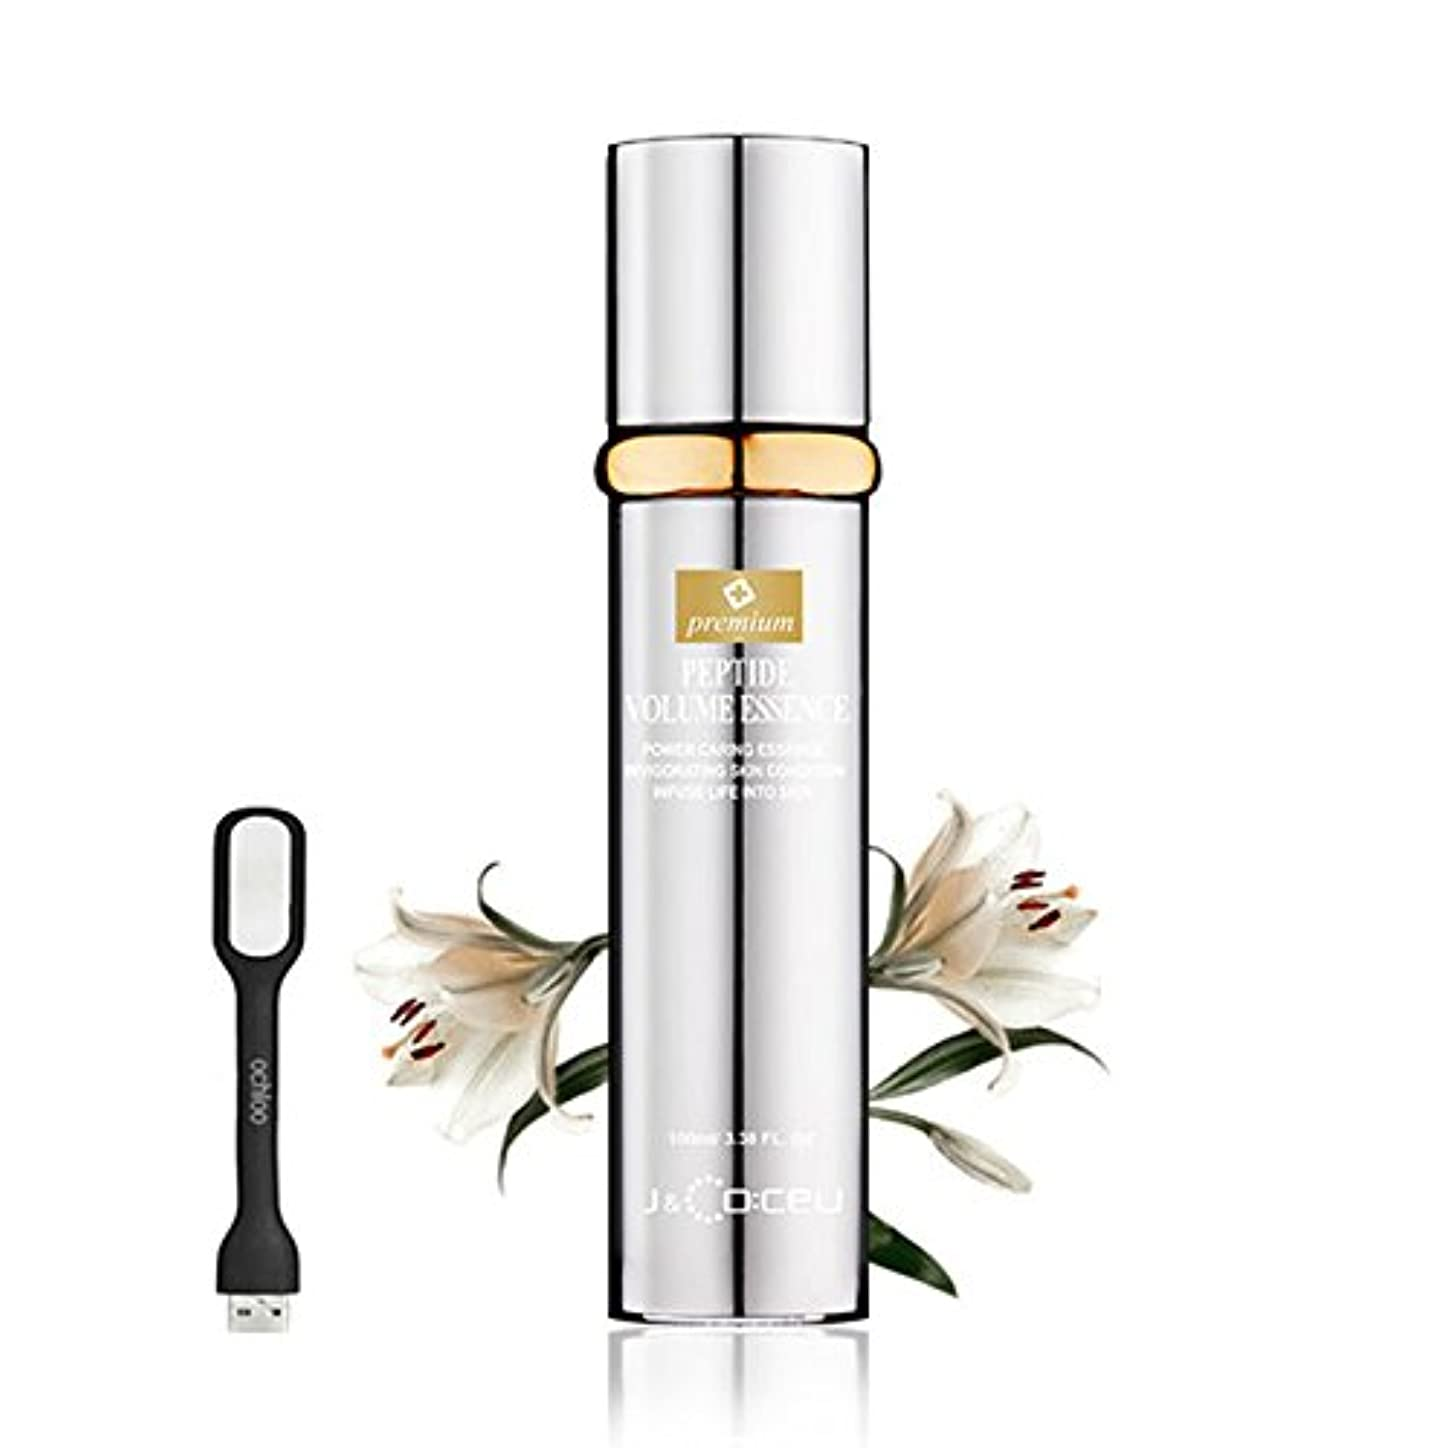 体系的に分数遠近法Premium Peptide Volume Essence 100ml: Upgraded Cosmetic Botox Anti-Wrinkle Essence All in One Wrinkle-care Firming...